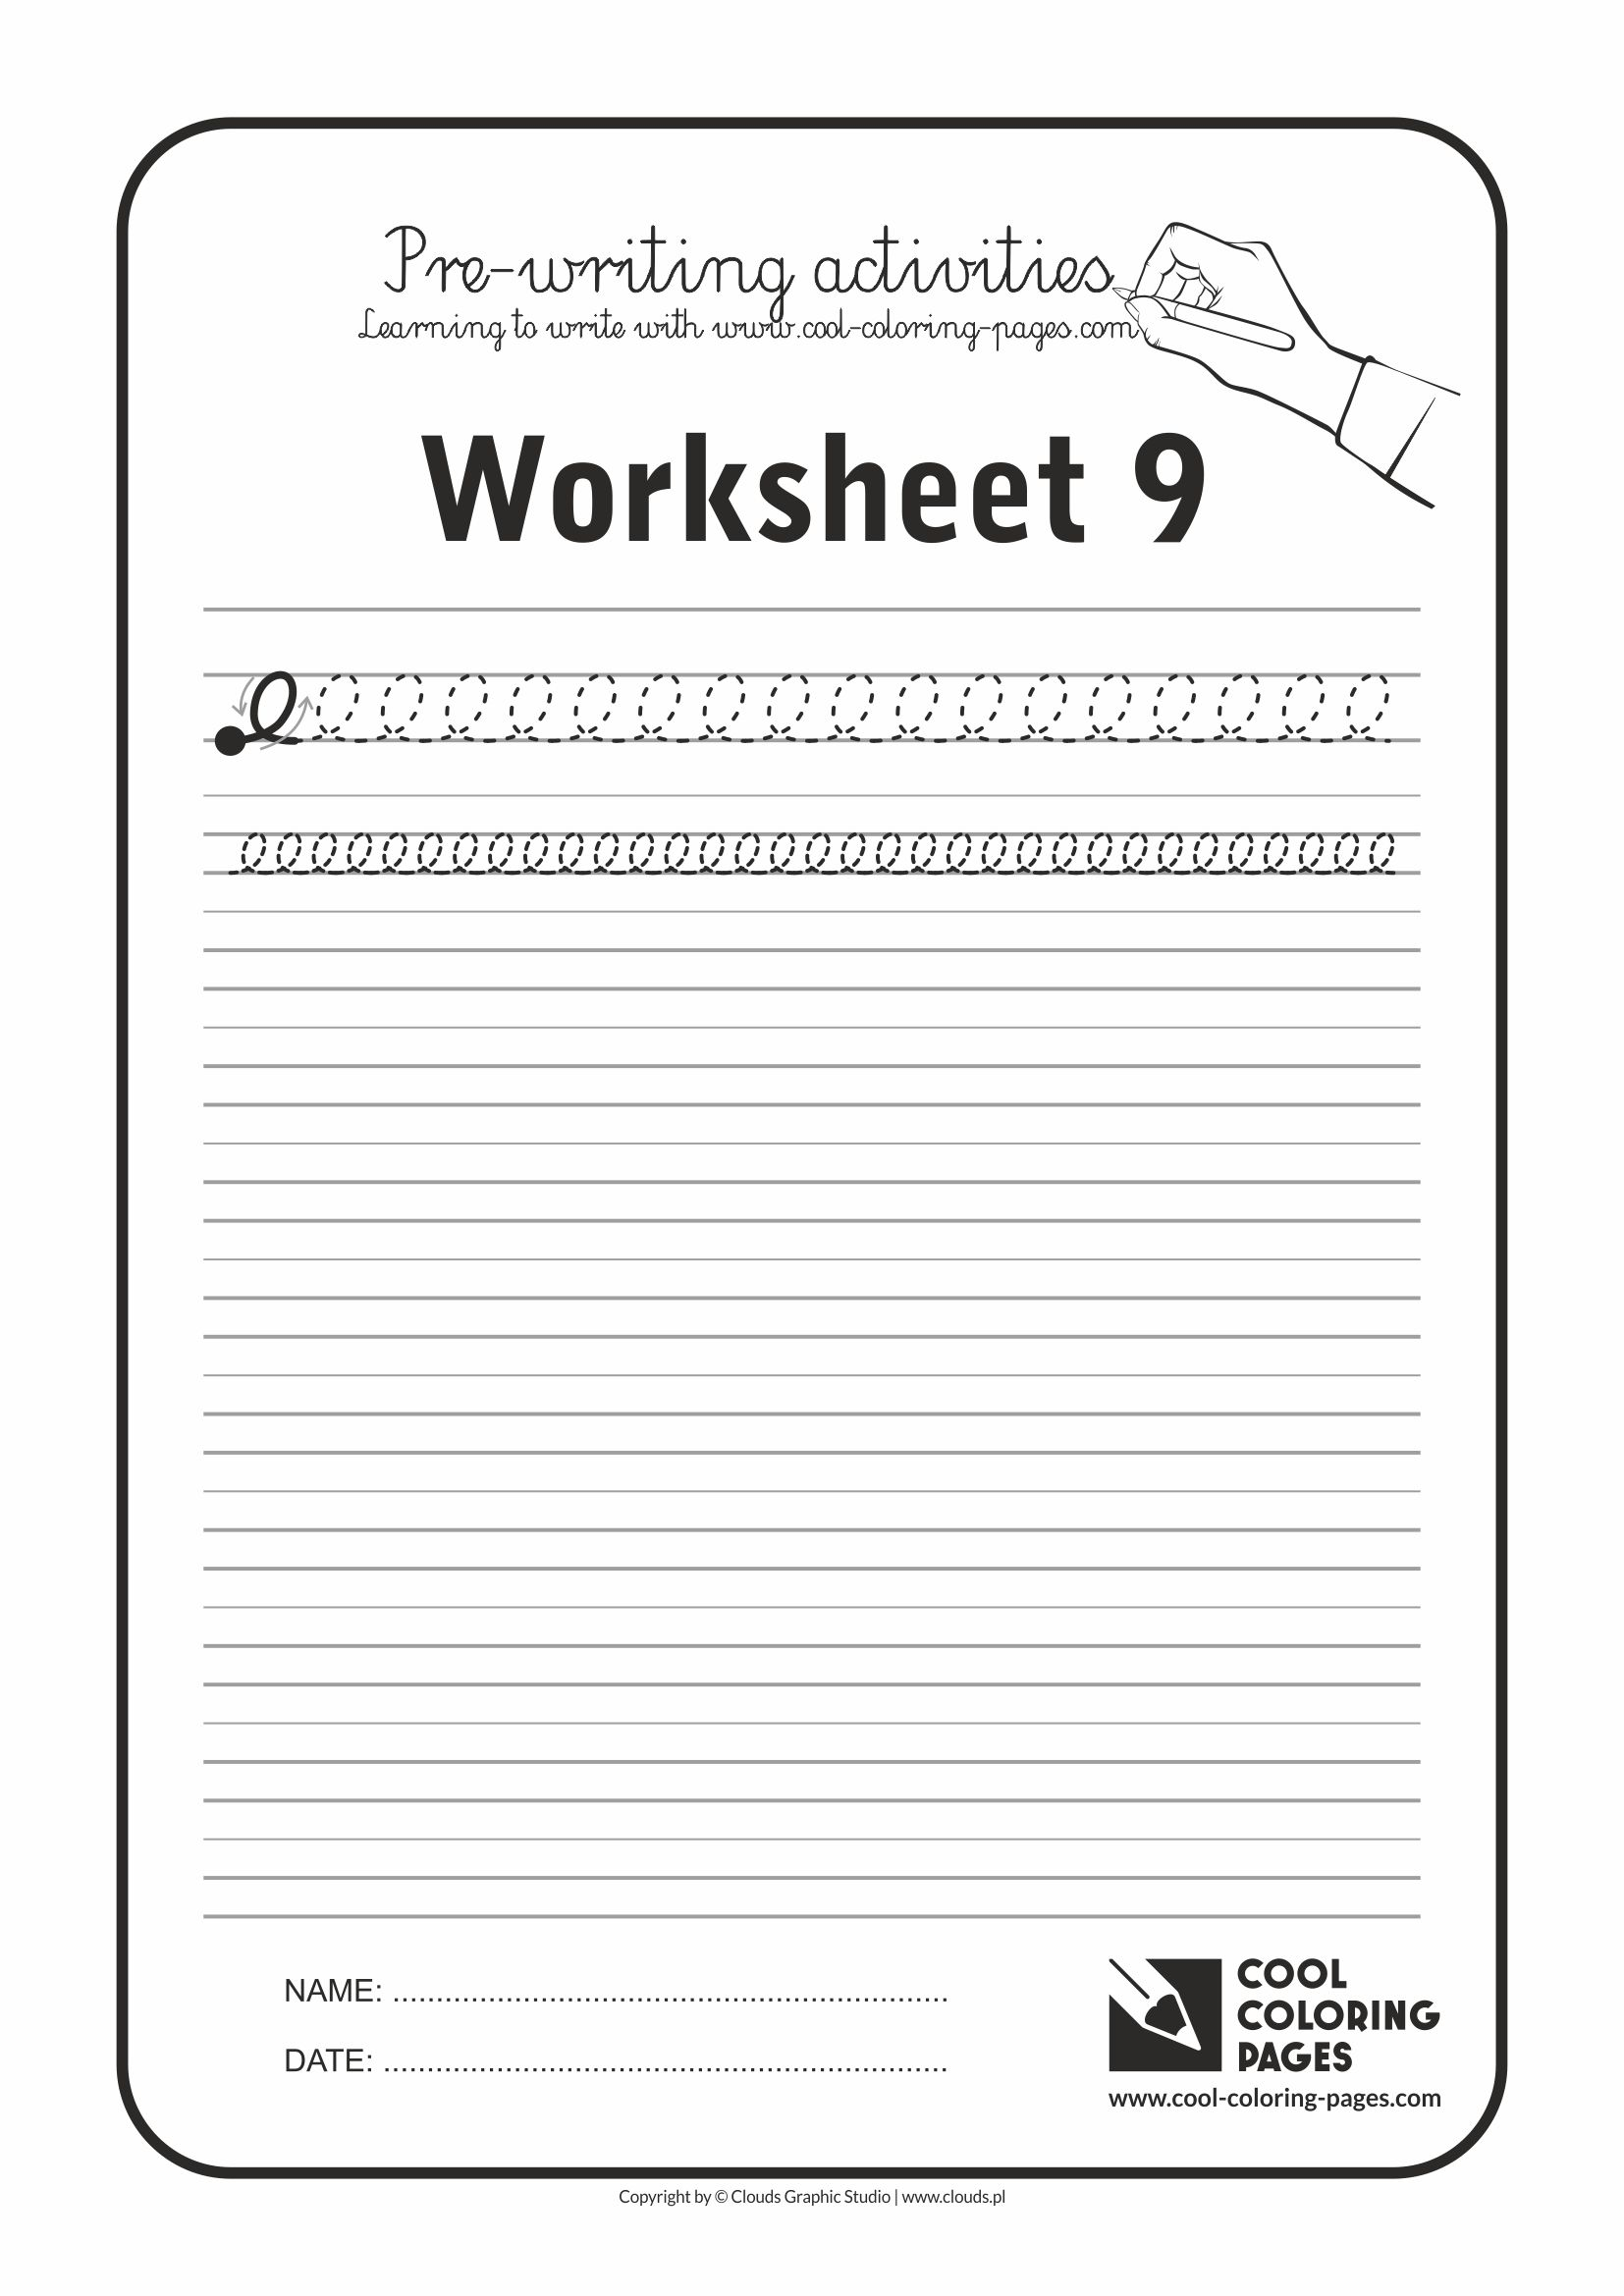 Cool Coloring Pages / Pre-writing activities / Worksheet no.9